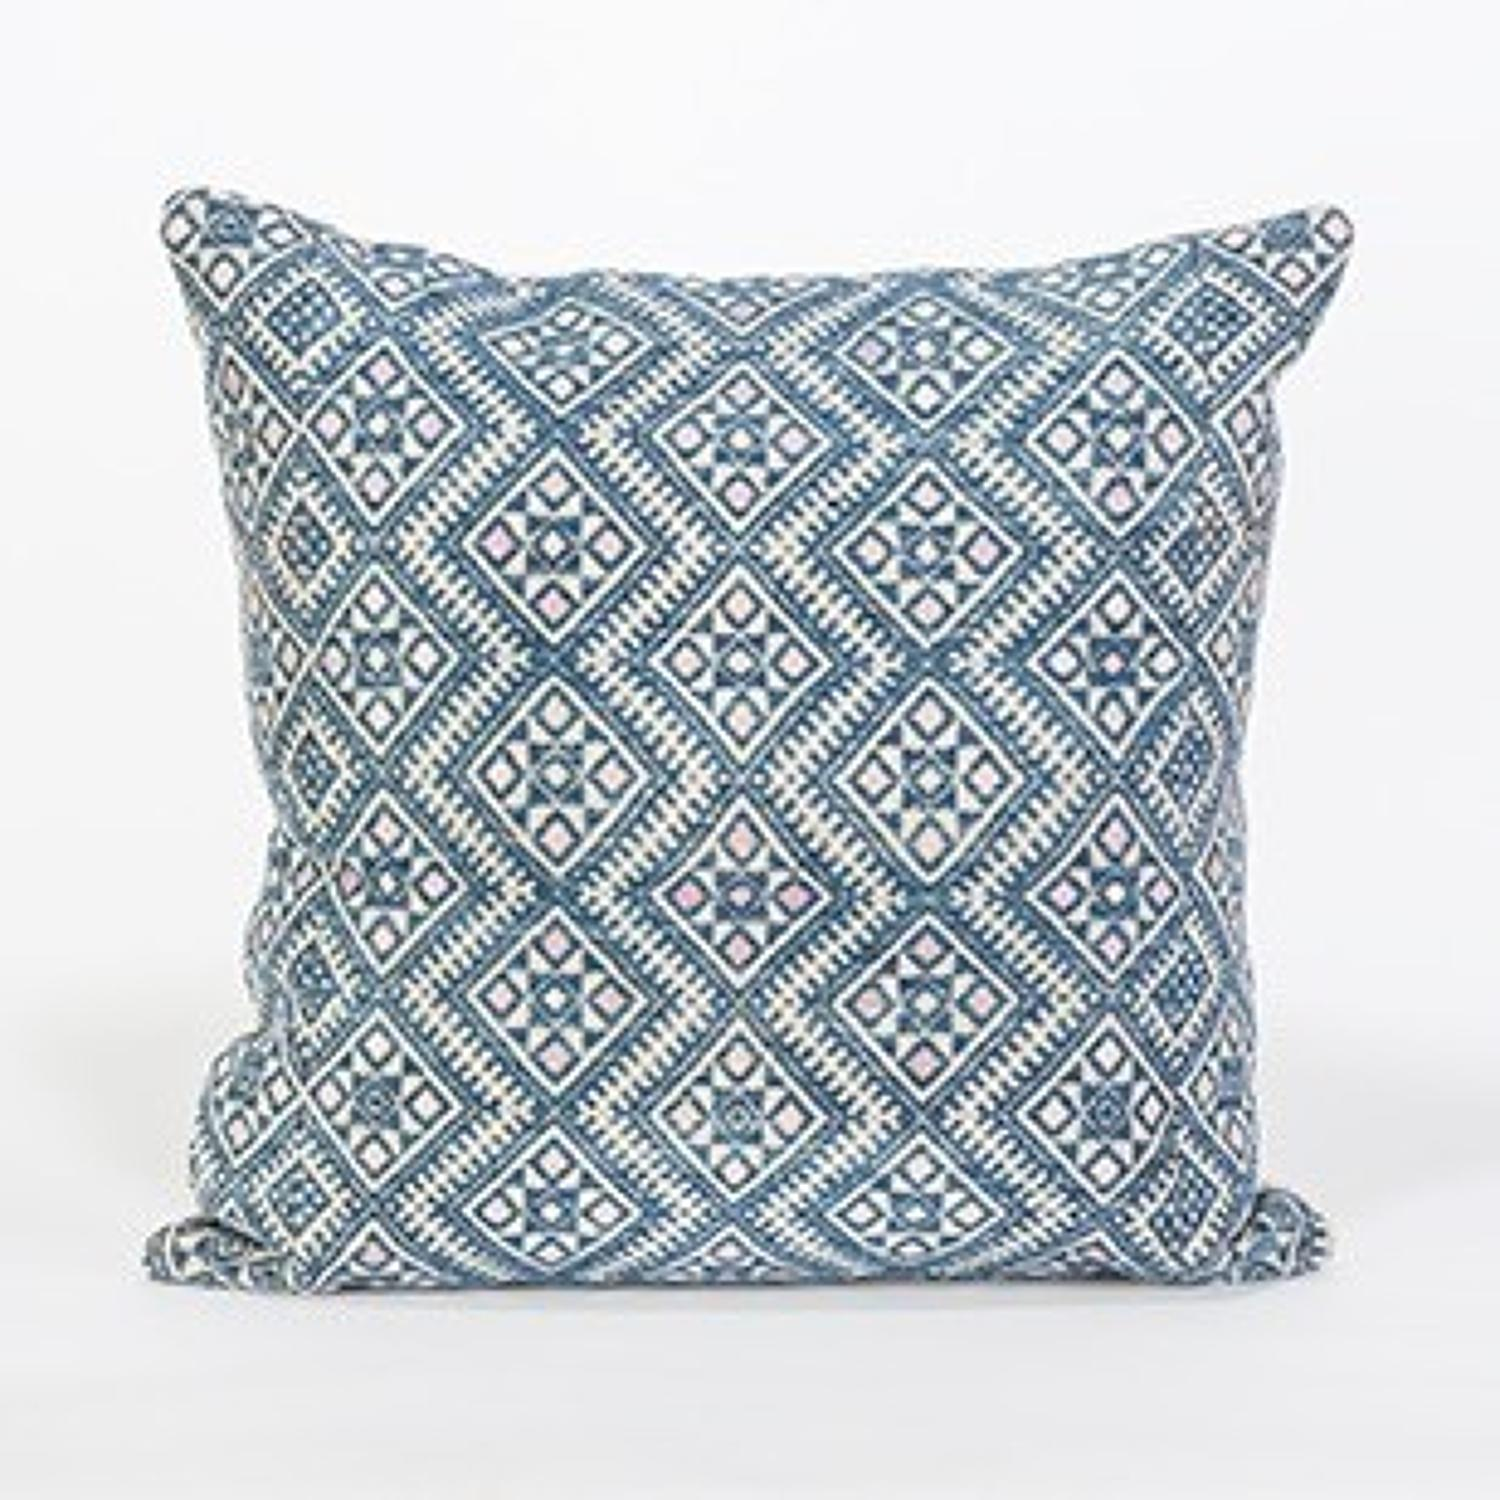 Zhuang Wedding Blanket Cushions